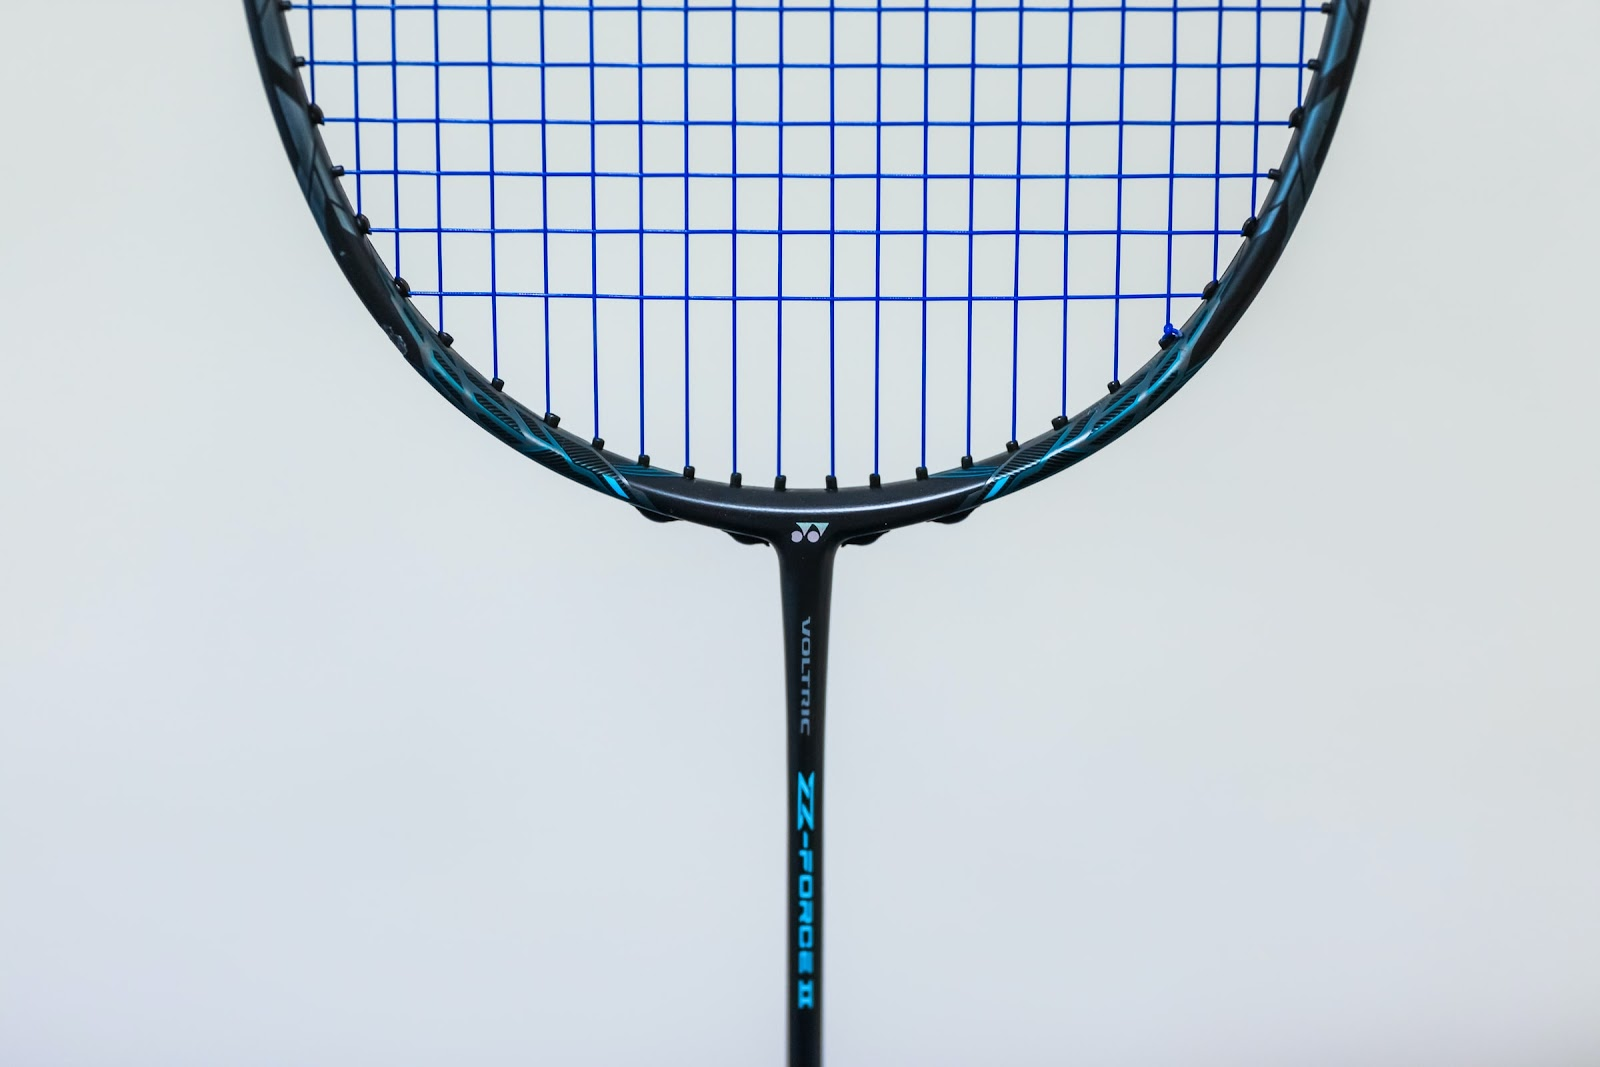 A close up of the bottom of a badminton racket with blue strings.